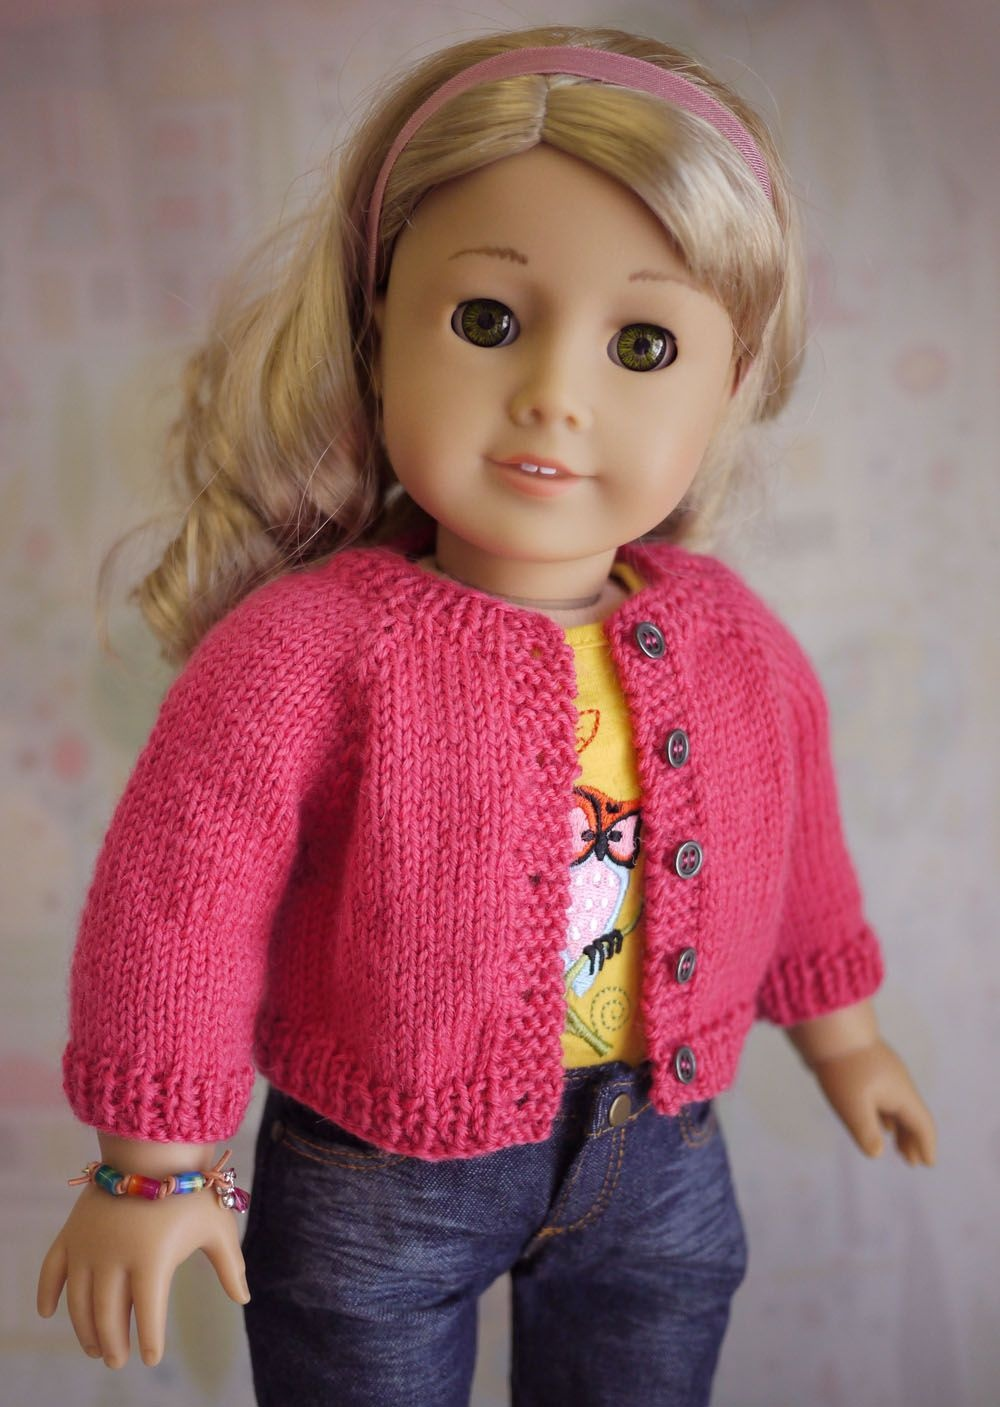 Free Patterns | Crafts: Dolls | Doll Clothes Patterns, Girl Doll - Free Printable Crochet Doll Clothes Patterns For 18 Inch Dolls